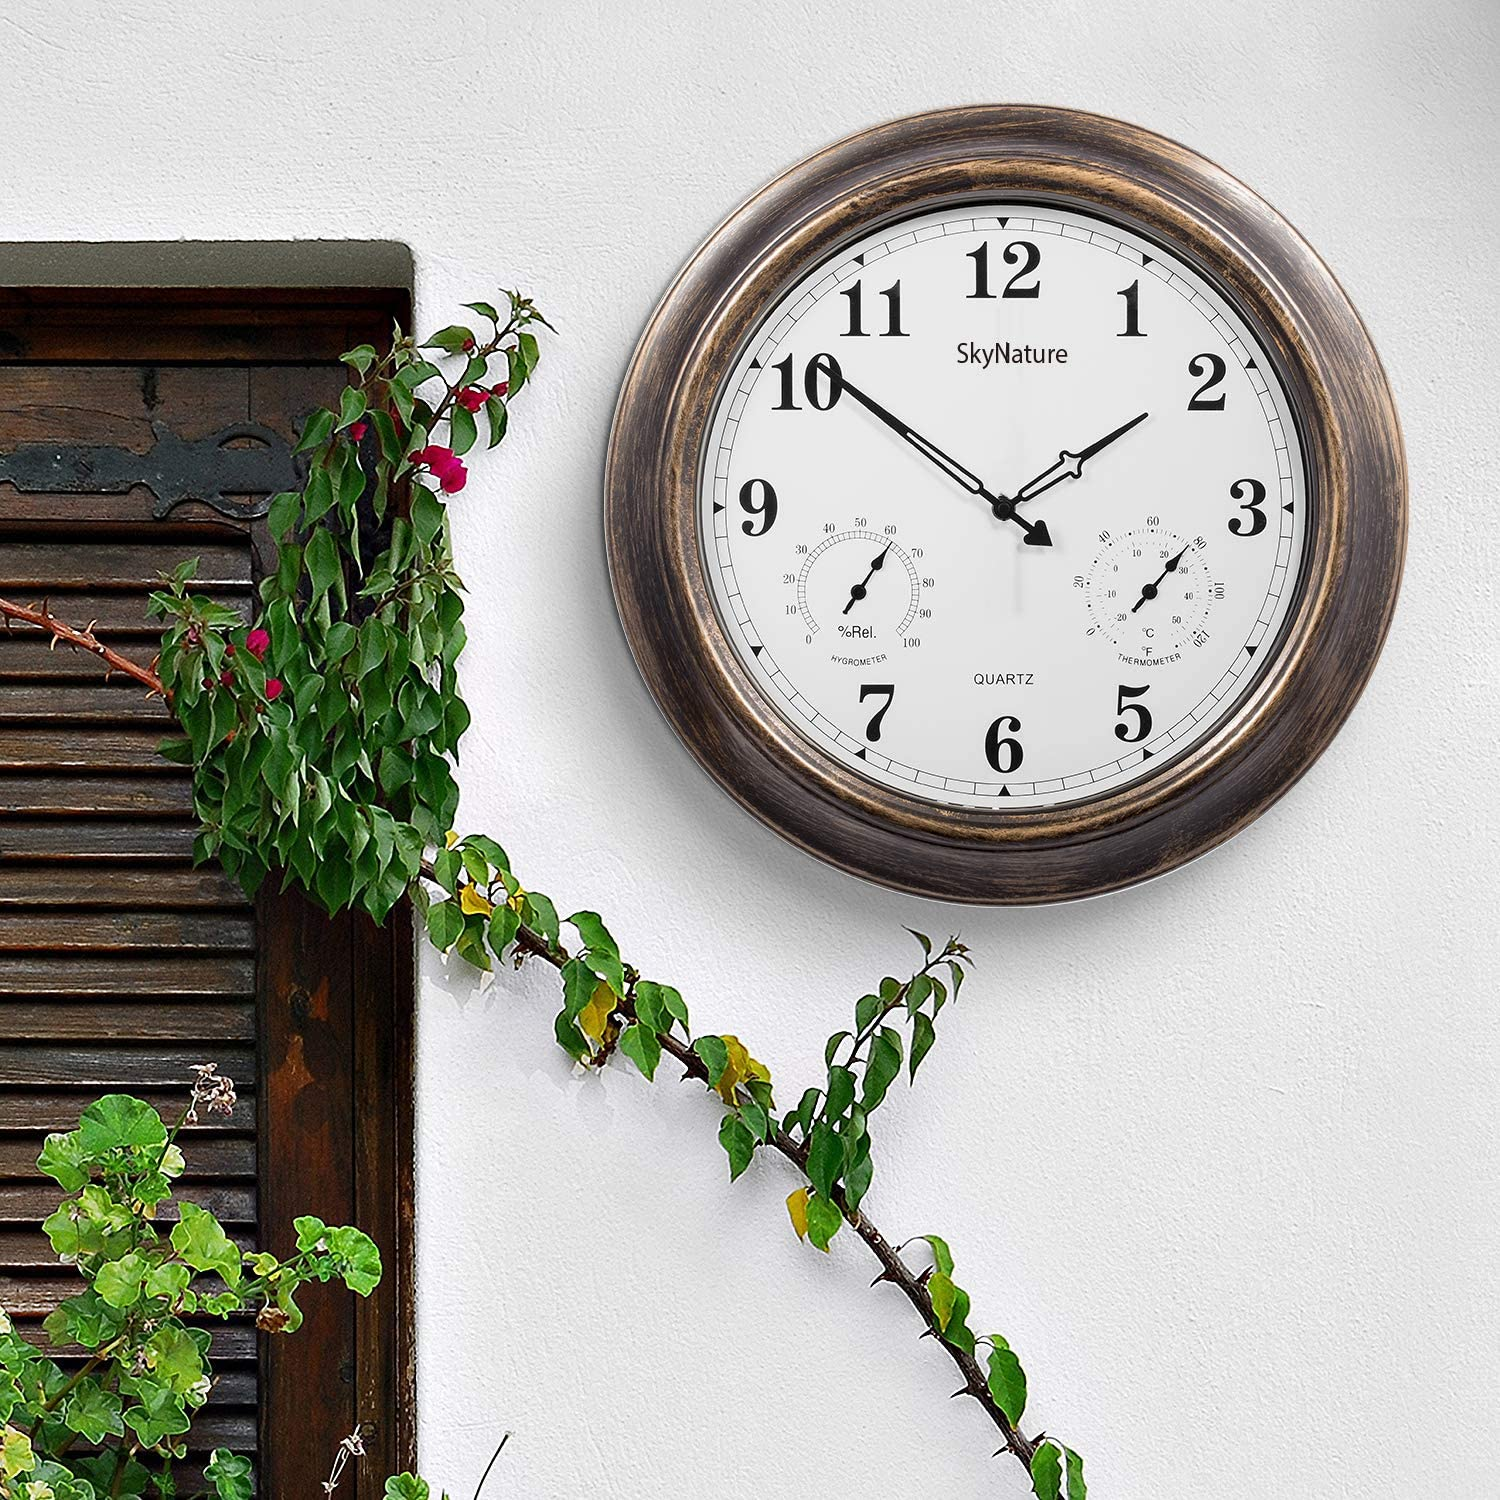 Bronze 18 Inch Large Outdoor Clocks With Thermometer Hygrometer Combo Patio Silent Battery Operated Metal Wall Clock For Living Room Garden Pool Decor Waterproof Outdoor Clock Patio Lawn Garden Outdoor